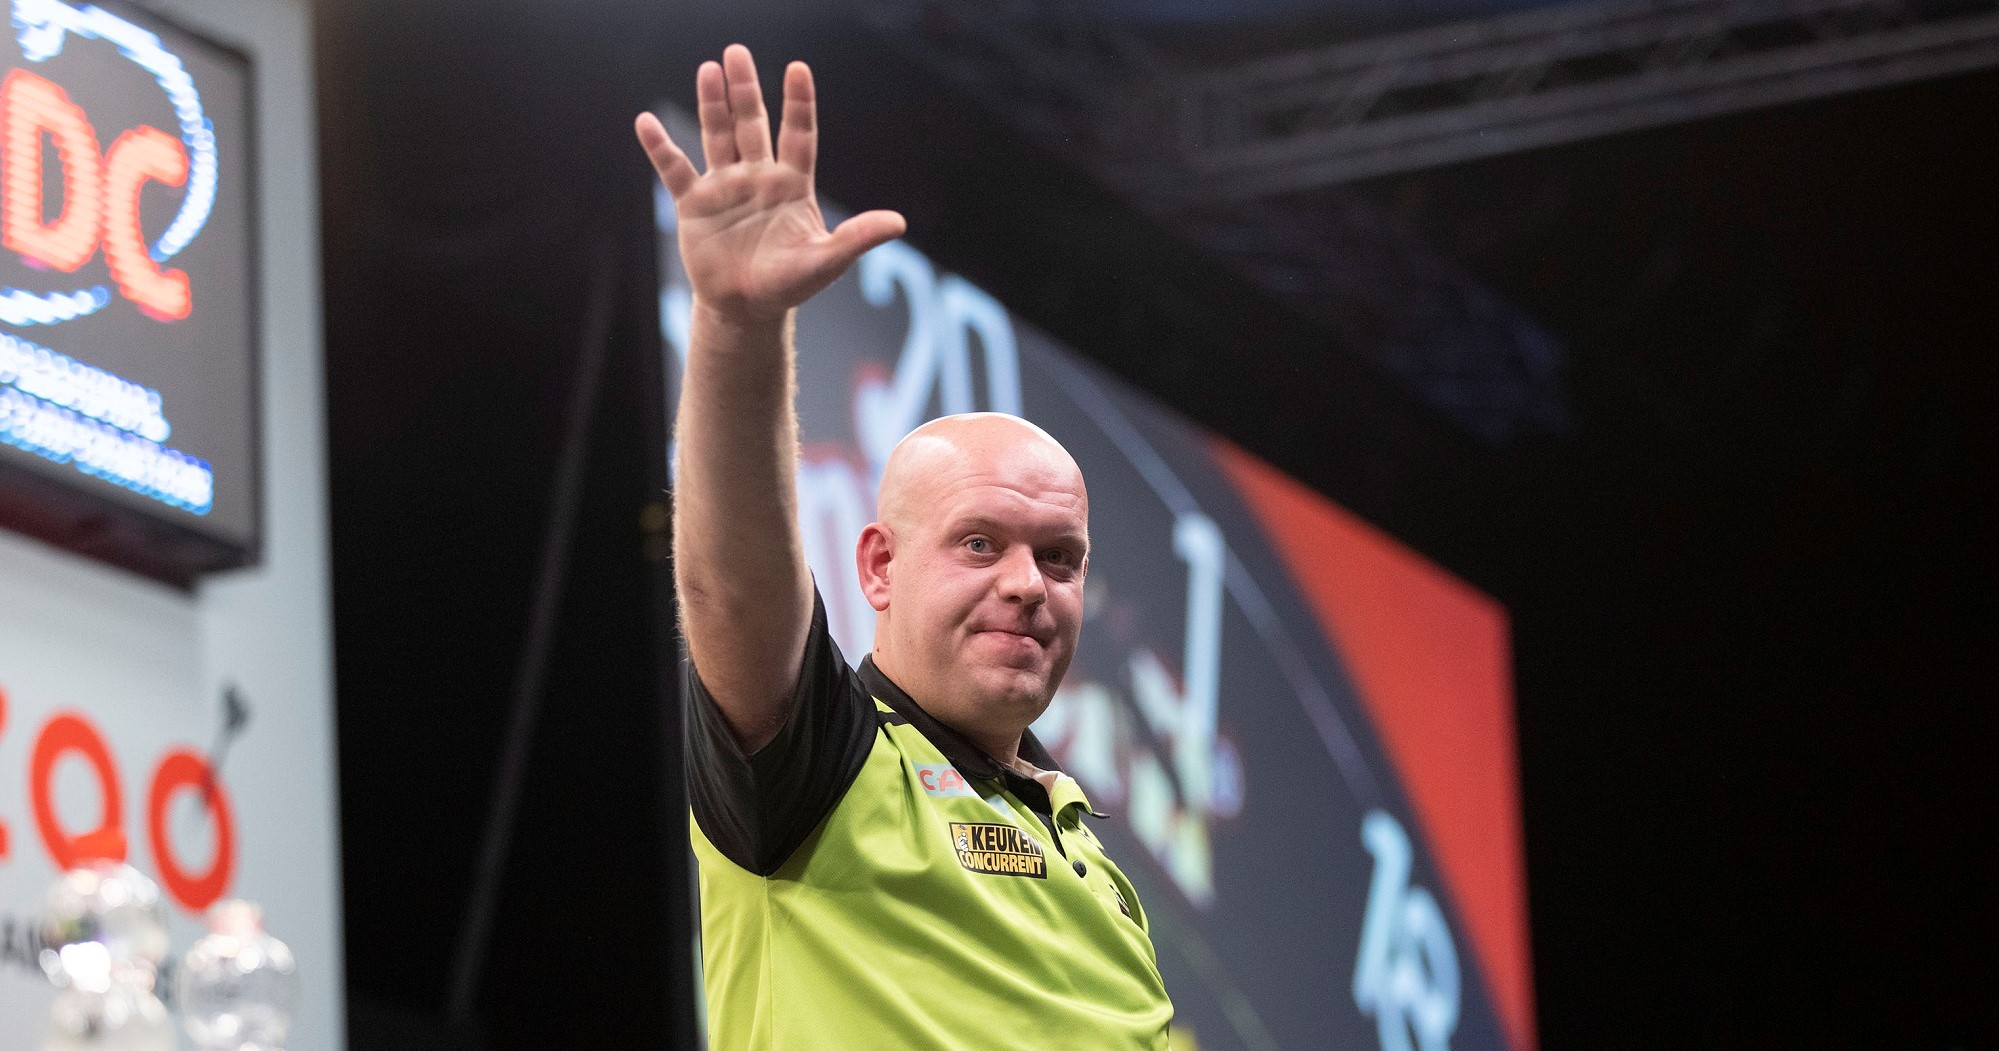 LIVEBLOG: Follow Day Two of PDC Super Series 7 (Players Championship 25) here - Van Gerwen and Wright through, top seed Cullen dumped out